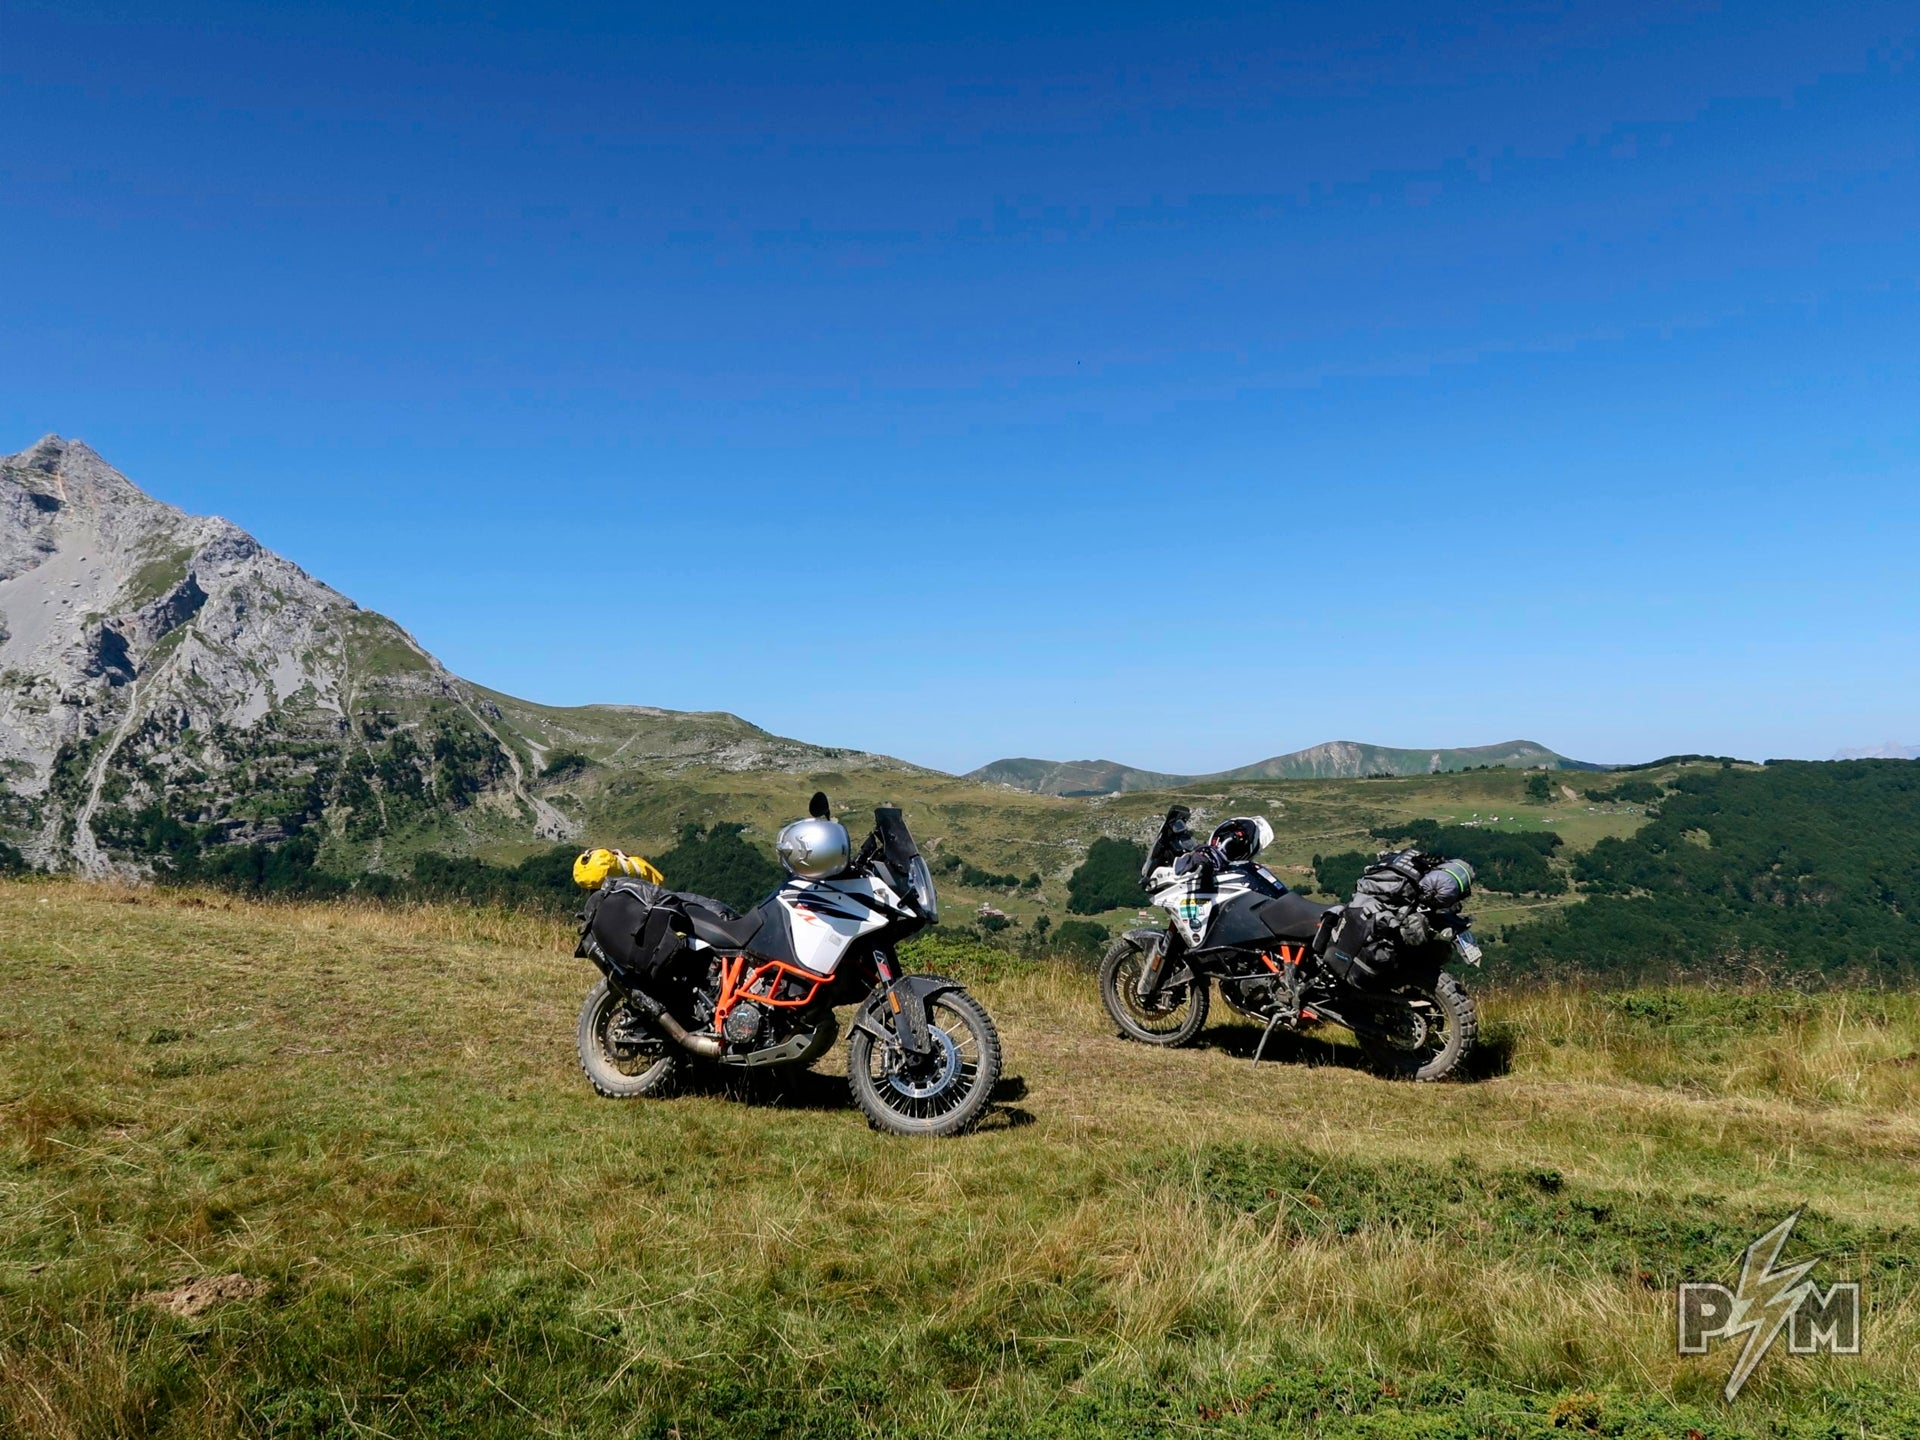 KTM 1090 Adventure R set for camping